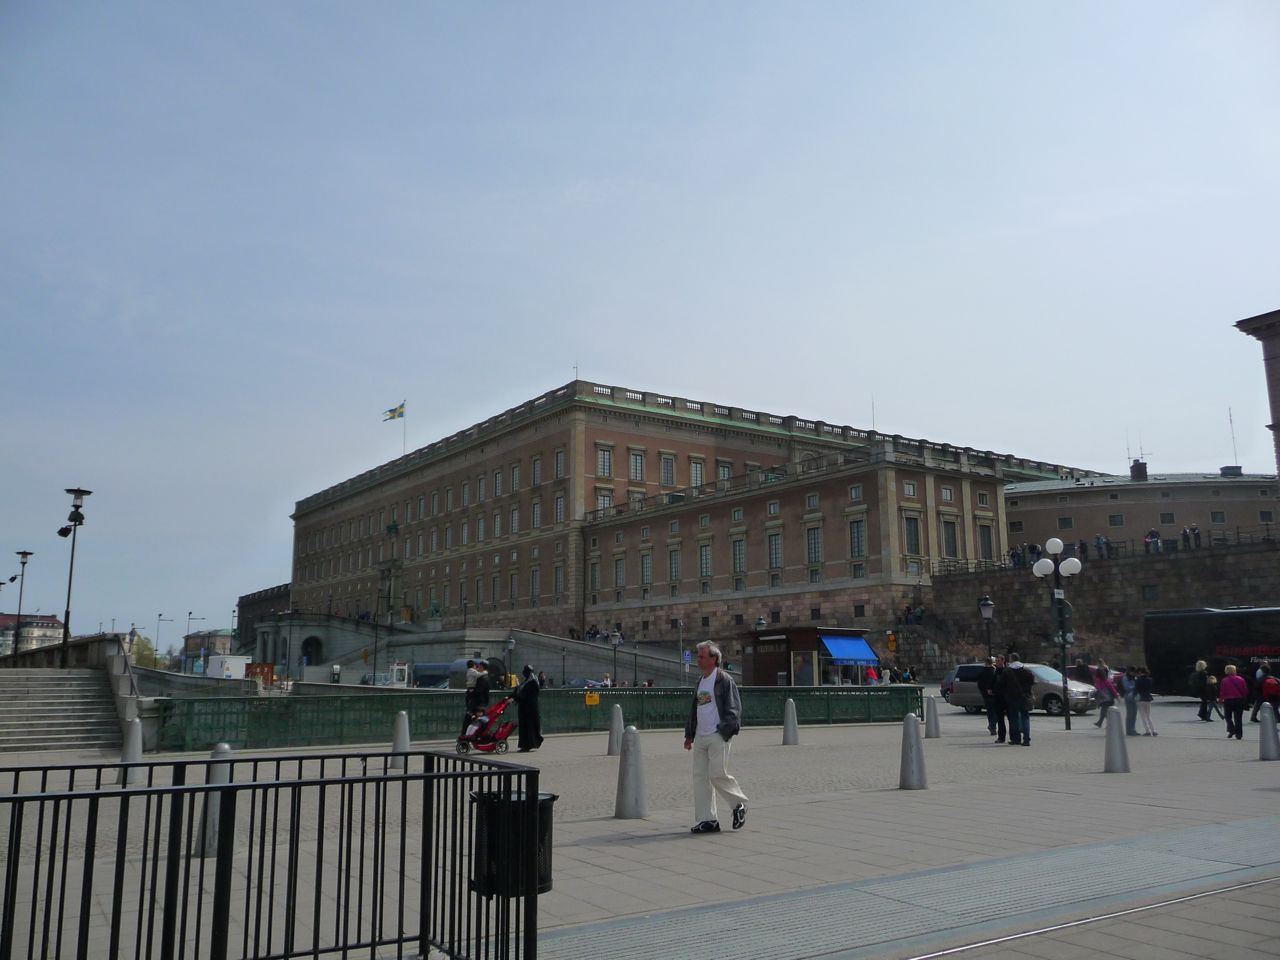 Stockholm Palace and More